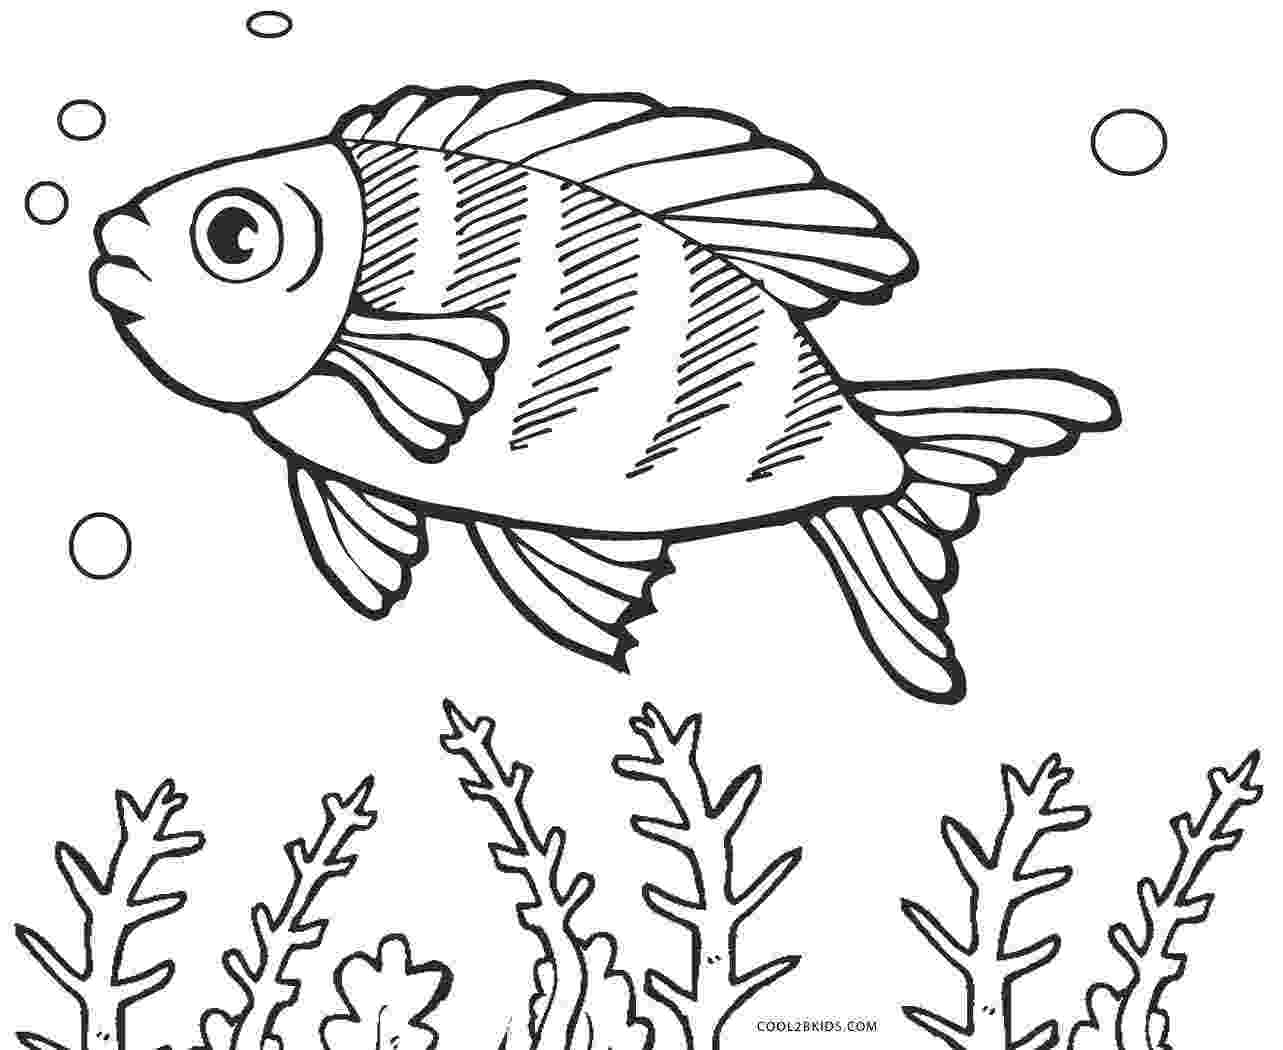 fish picture to color free printable fish coloring pages for kids cool2bkids fish picture color to